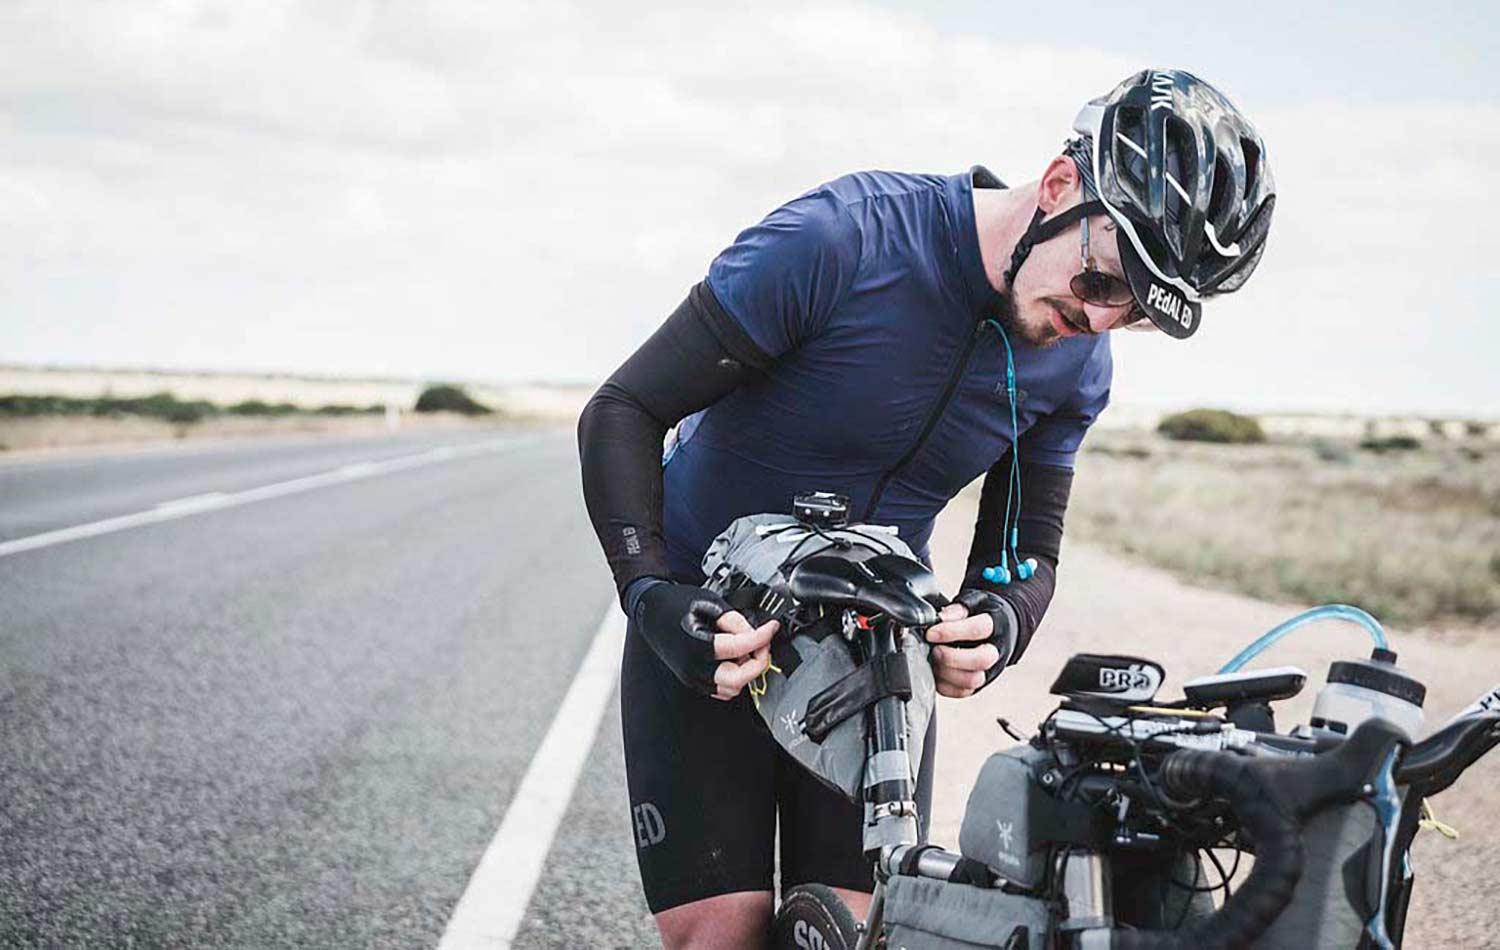 mike hall apidura packs on his bike